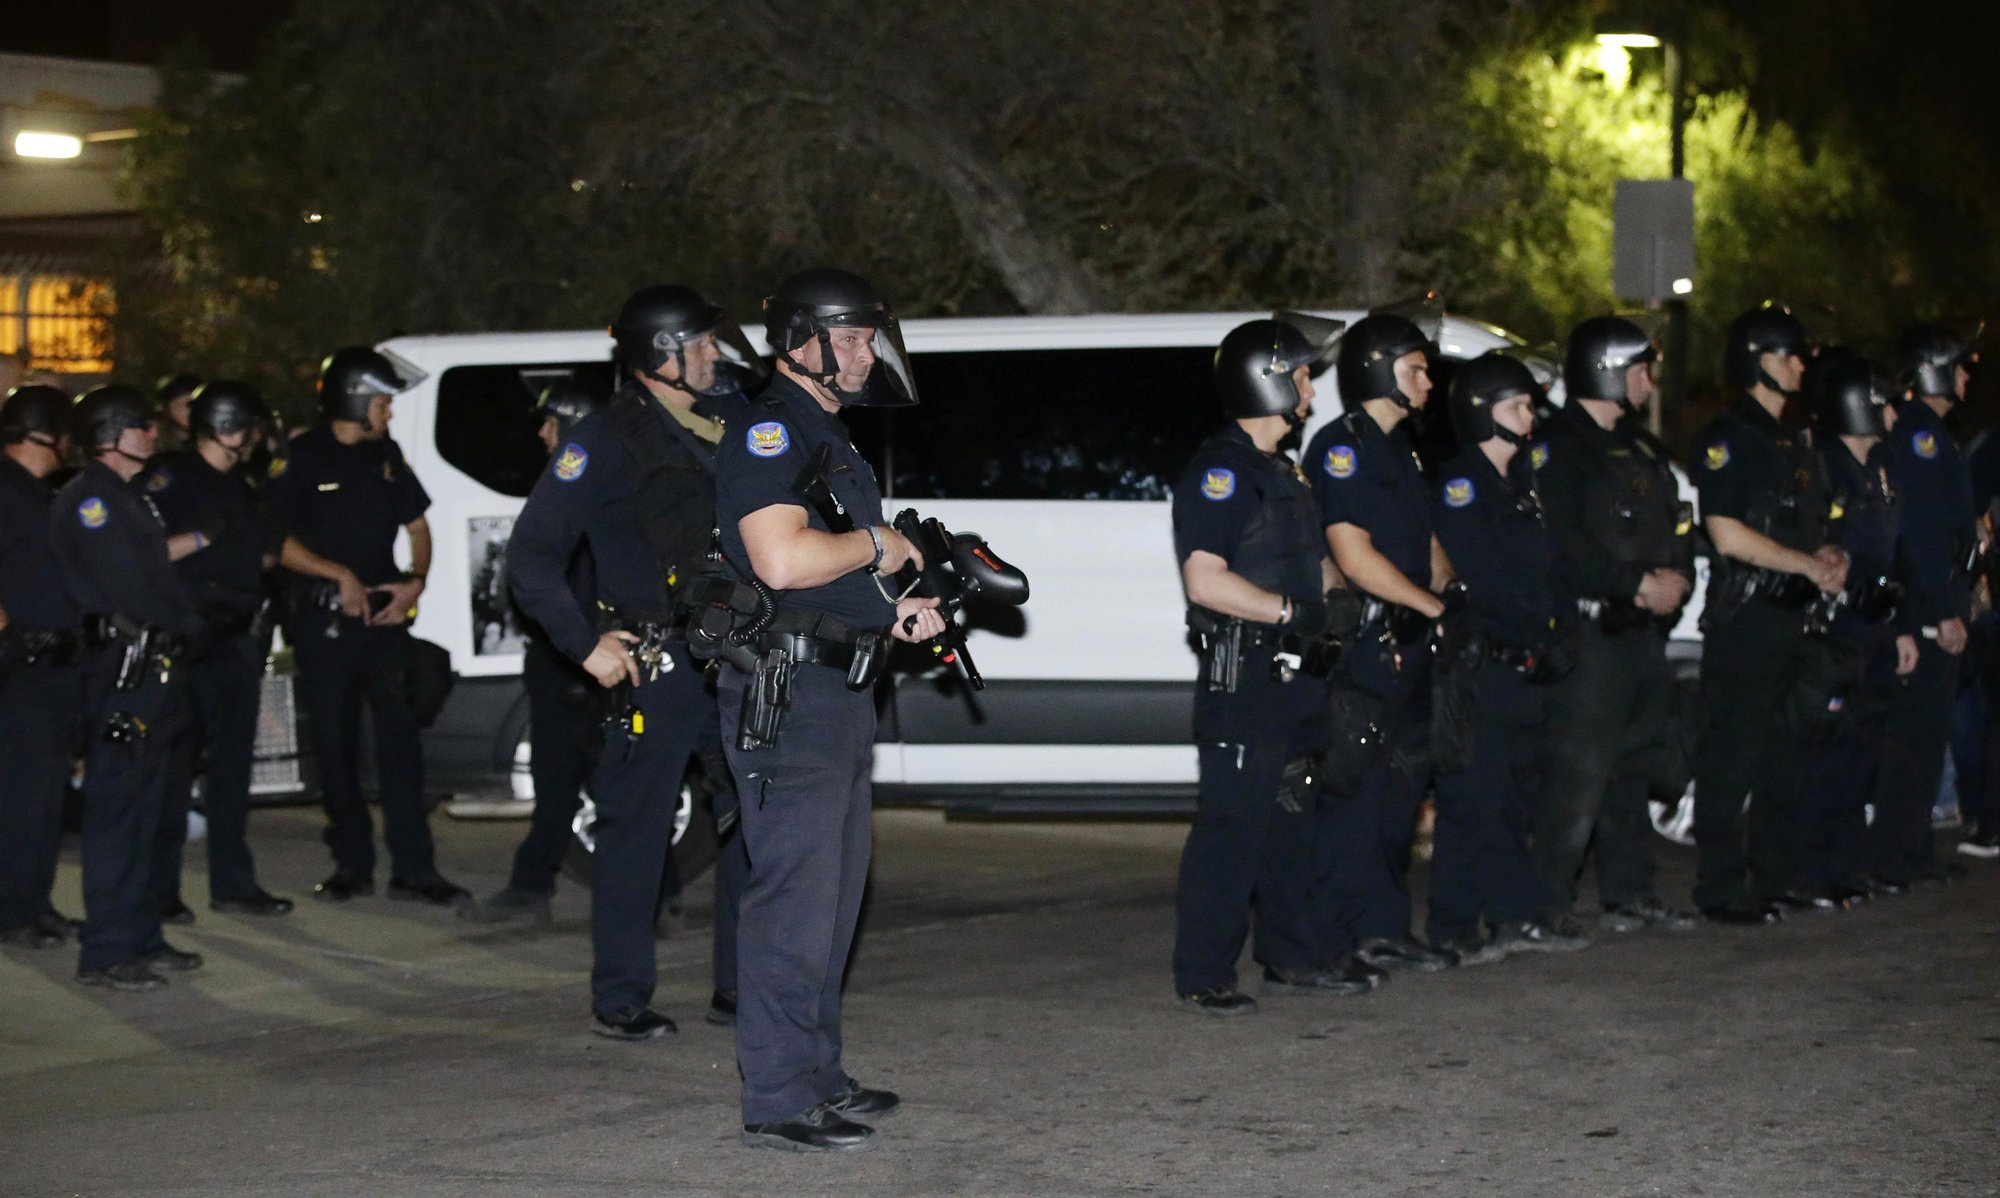 US cities tighten security at mosques in light of New Zealand mass shootings